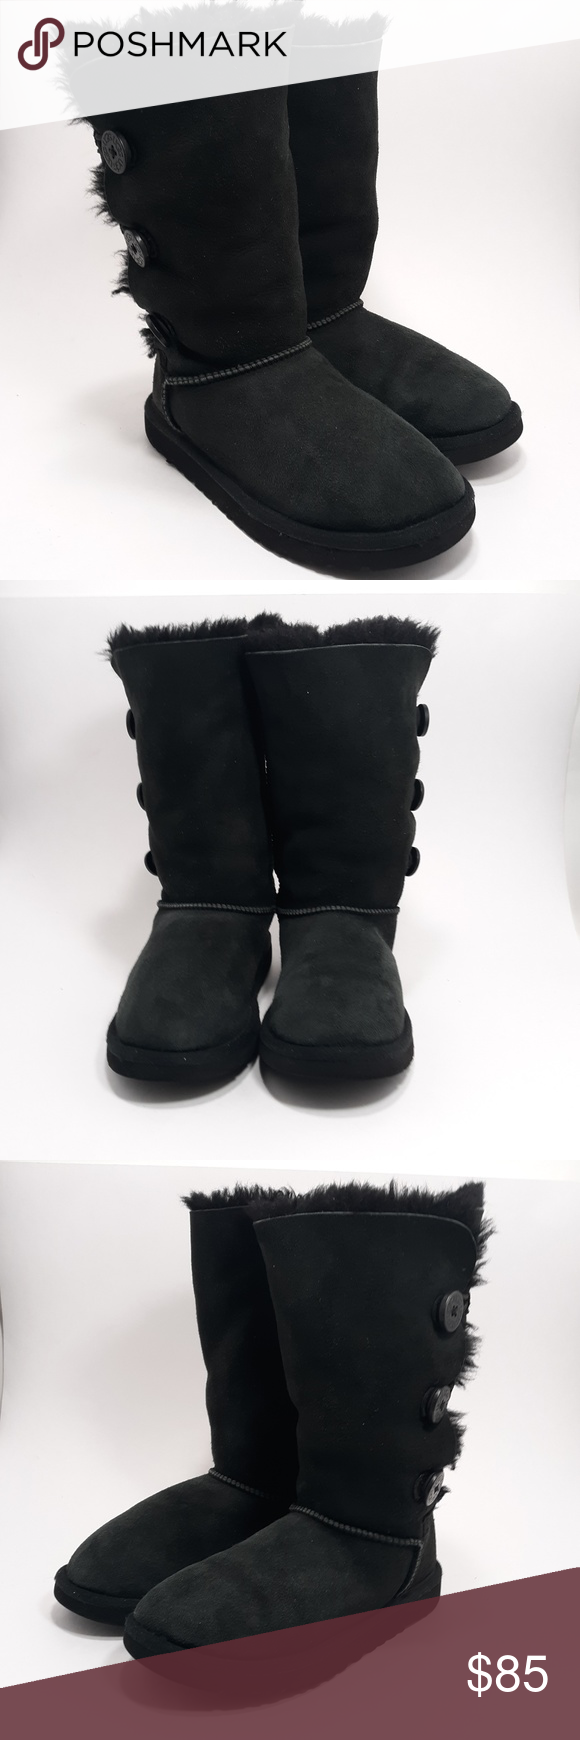 UGG Girls Black Bailey Triple Button Boots Size 2 Excellent Condition! Worn only a few times! Sorry no box, UGG Shoes Boots #uggbootsoutfitblackgirl UGG Girls Black Bailey Triple Button Boots Size 2 Excellent Condition! Worn only a few times! Sorry no box, UGG Shoes Boots #uggbootsoutfitblackgirl